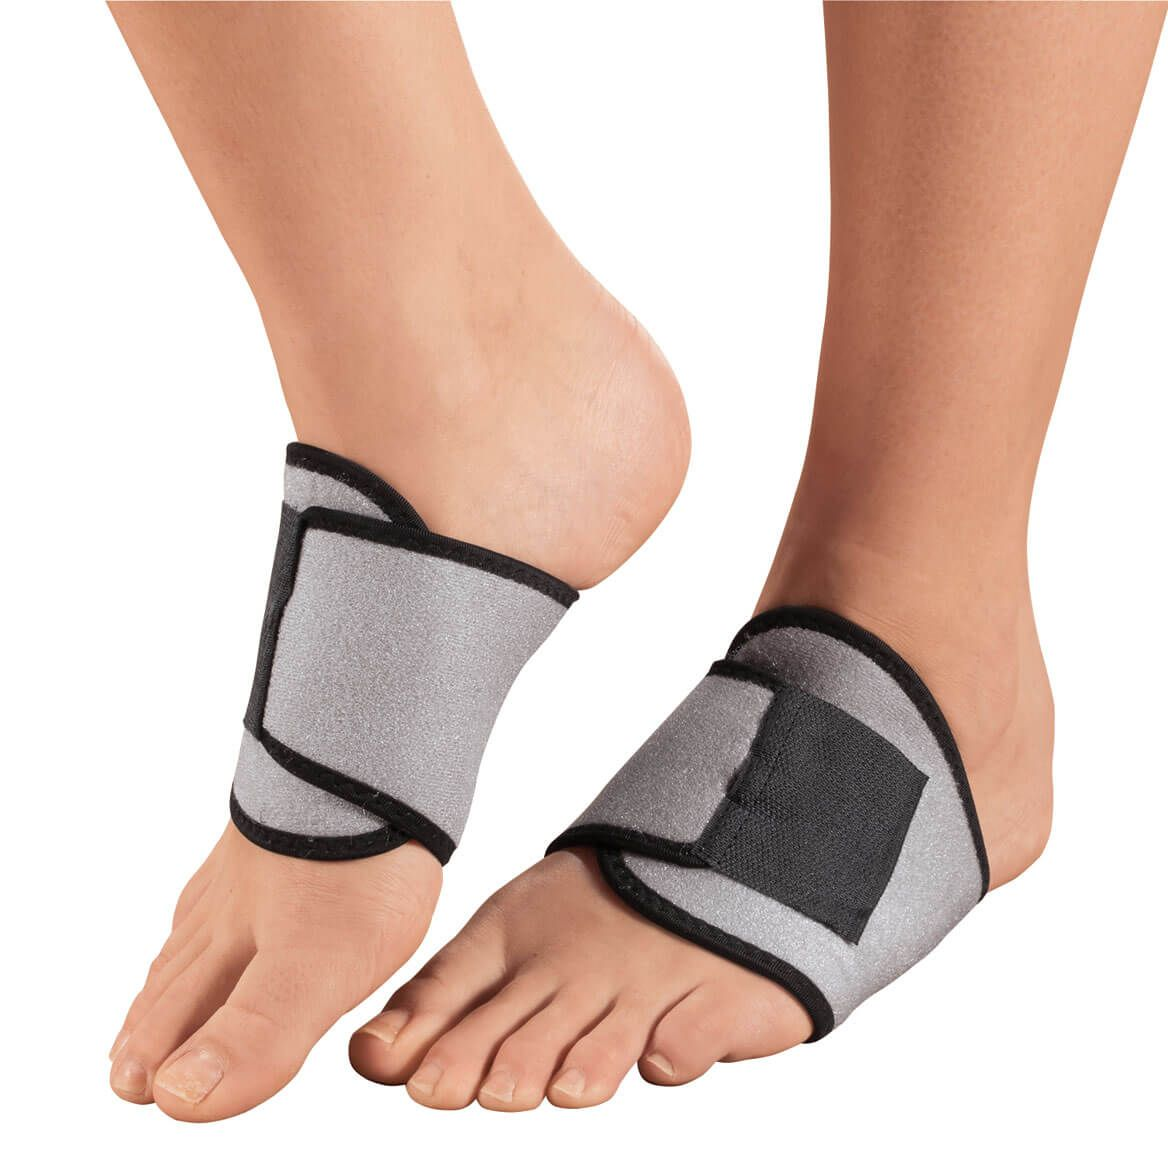 Adjustable Compression Arch Support, 1 Pair-359503